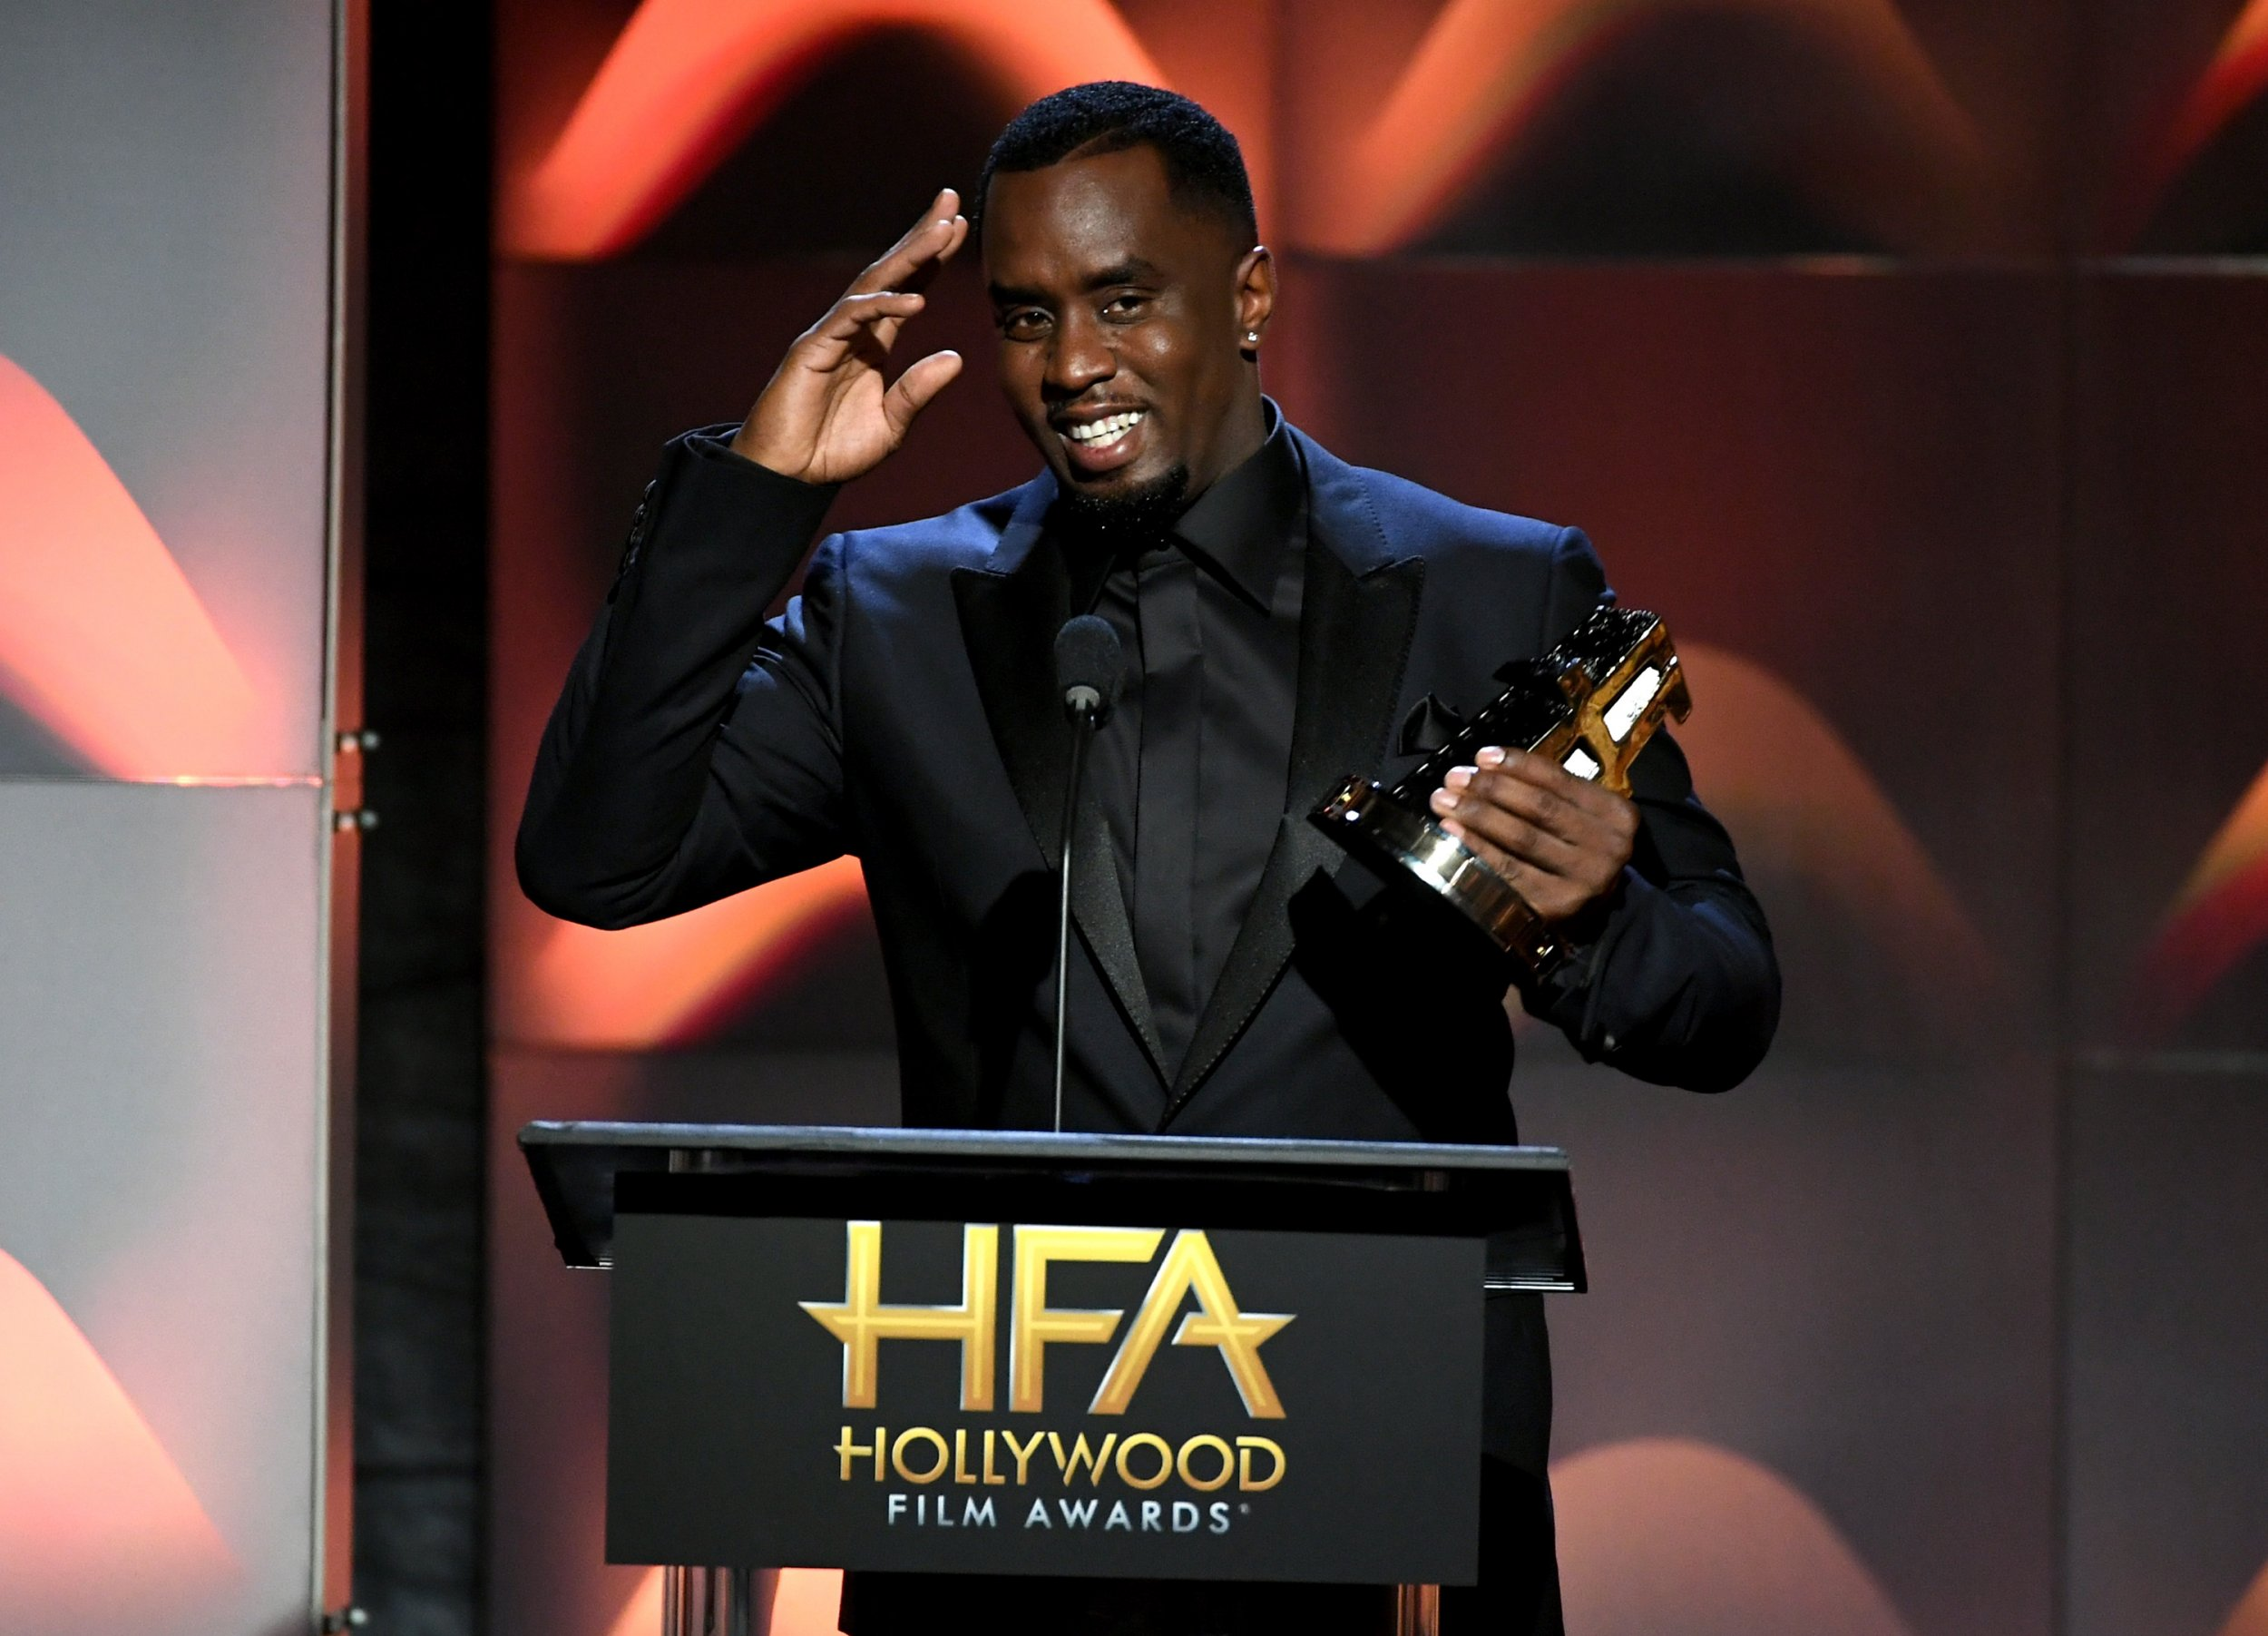 Sean Combs, better known as P Diddy, at The Beverly Hilton Hotel in Beverly Hills, California, November 5.